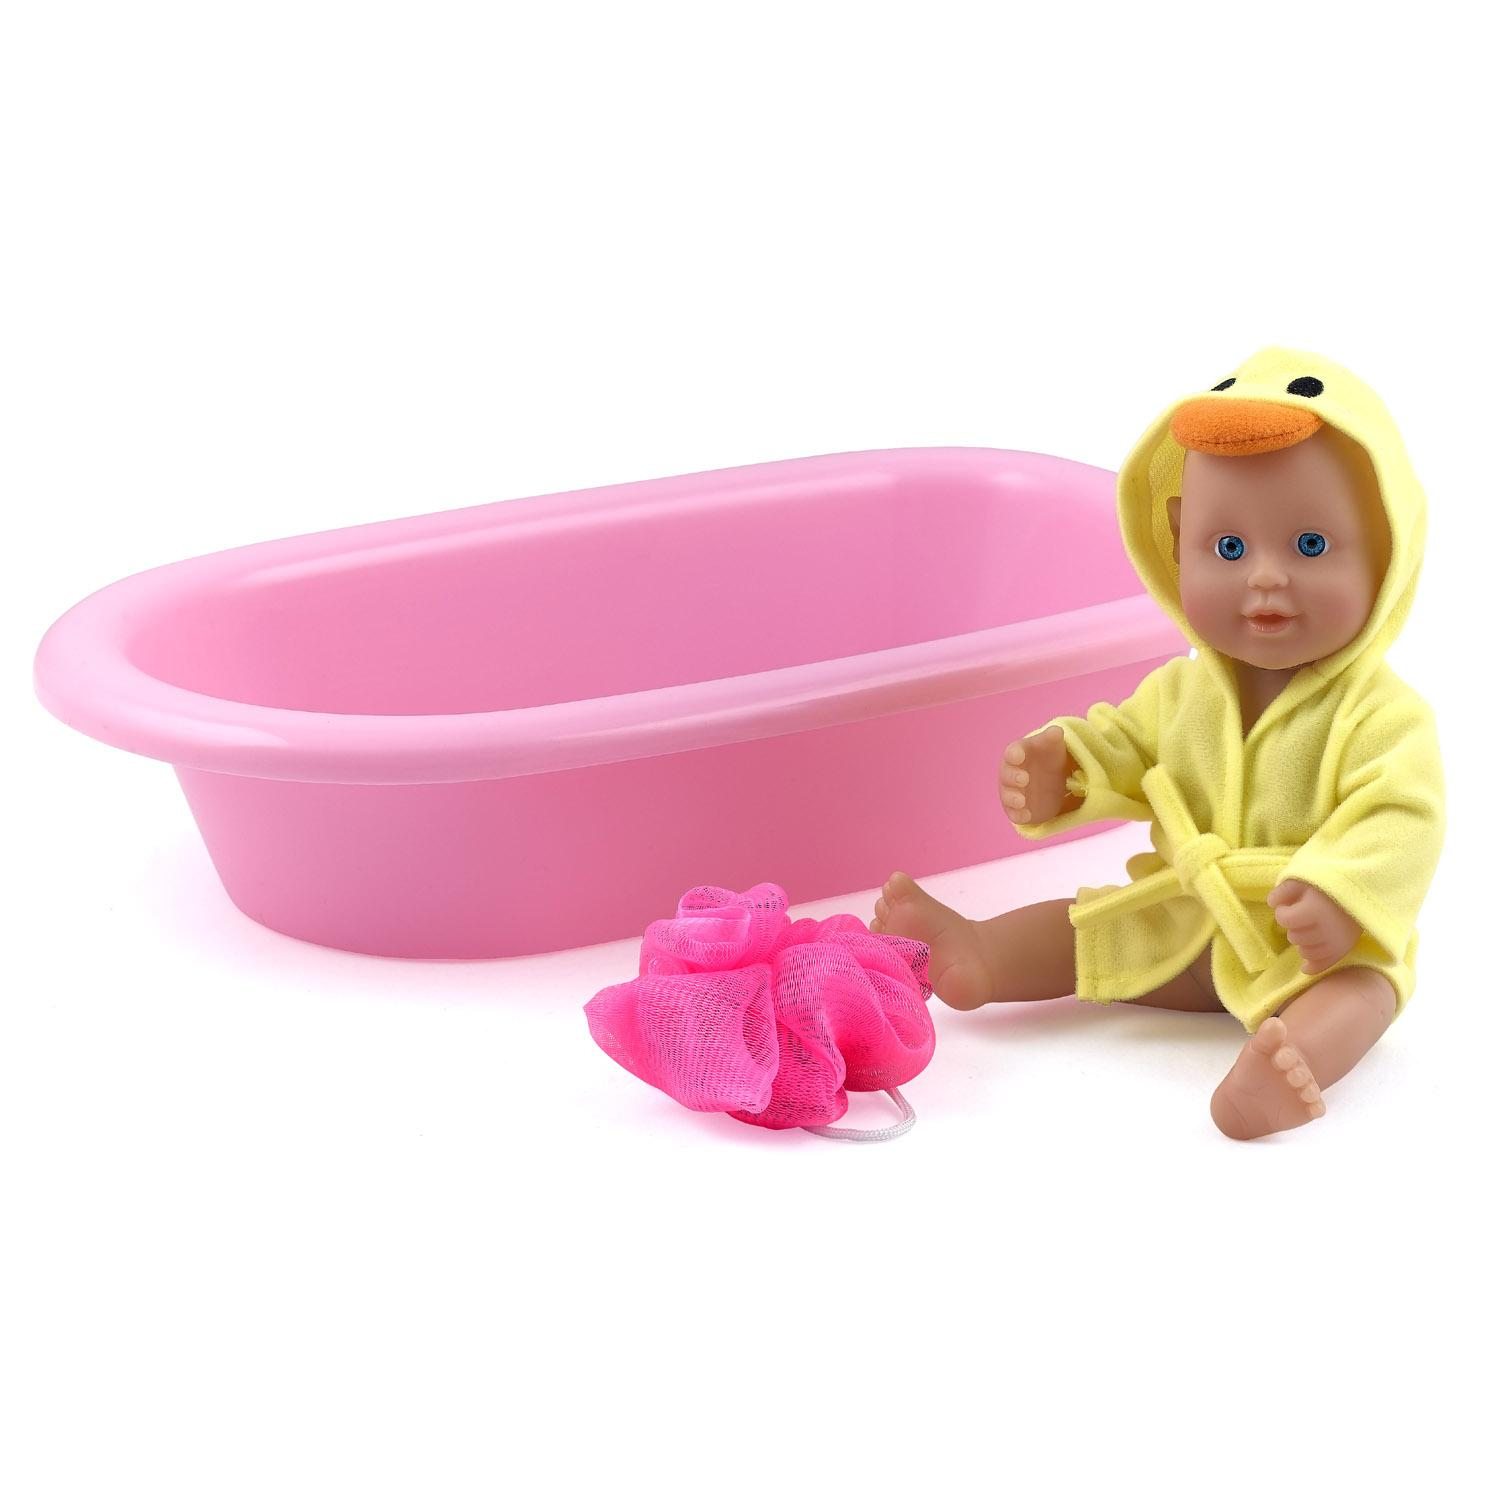 how to make a doll bath tub doll crafts 18 inch doll bathtub with shower fits. Black Bedroom Furniture Sets. Home Design Ideas